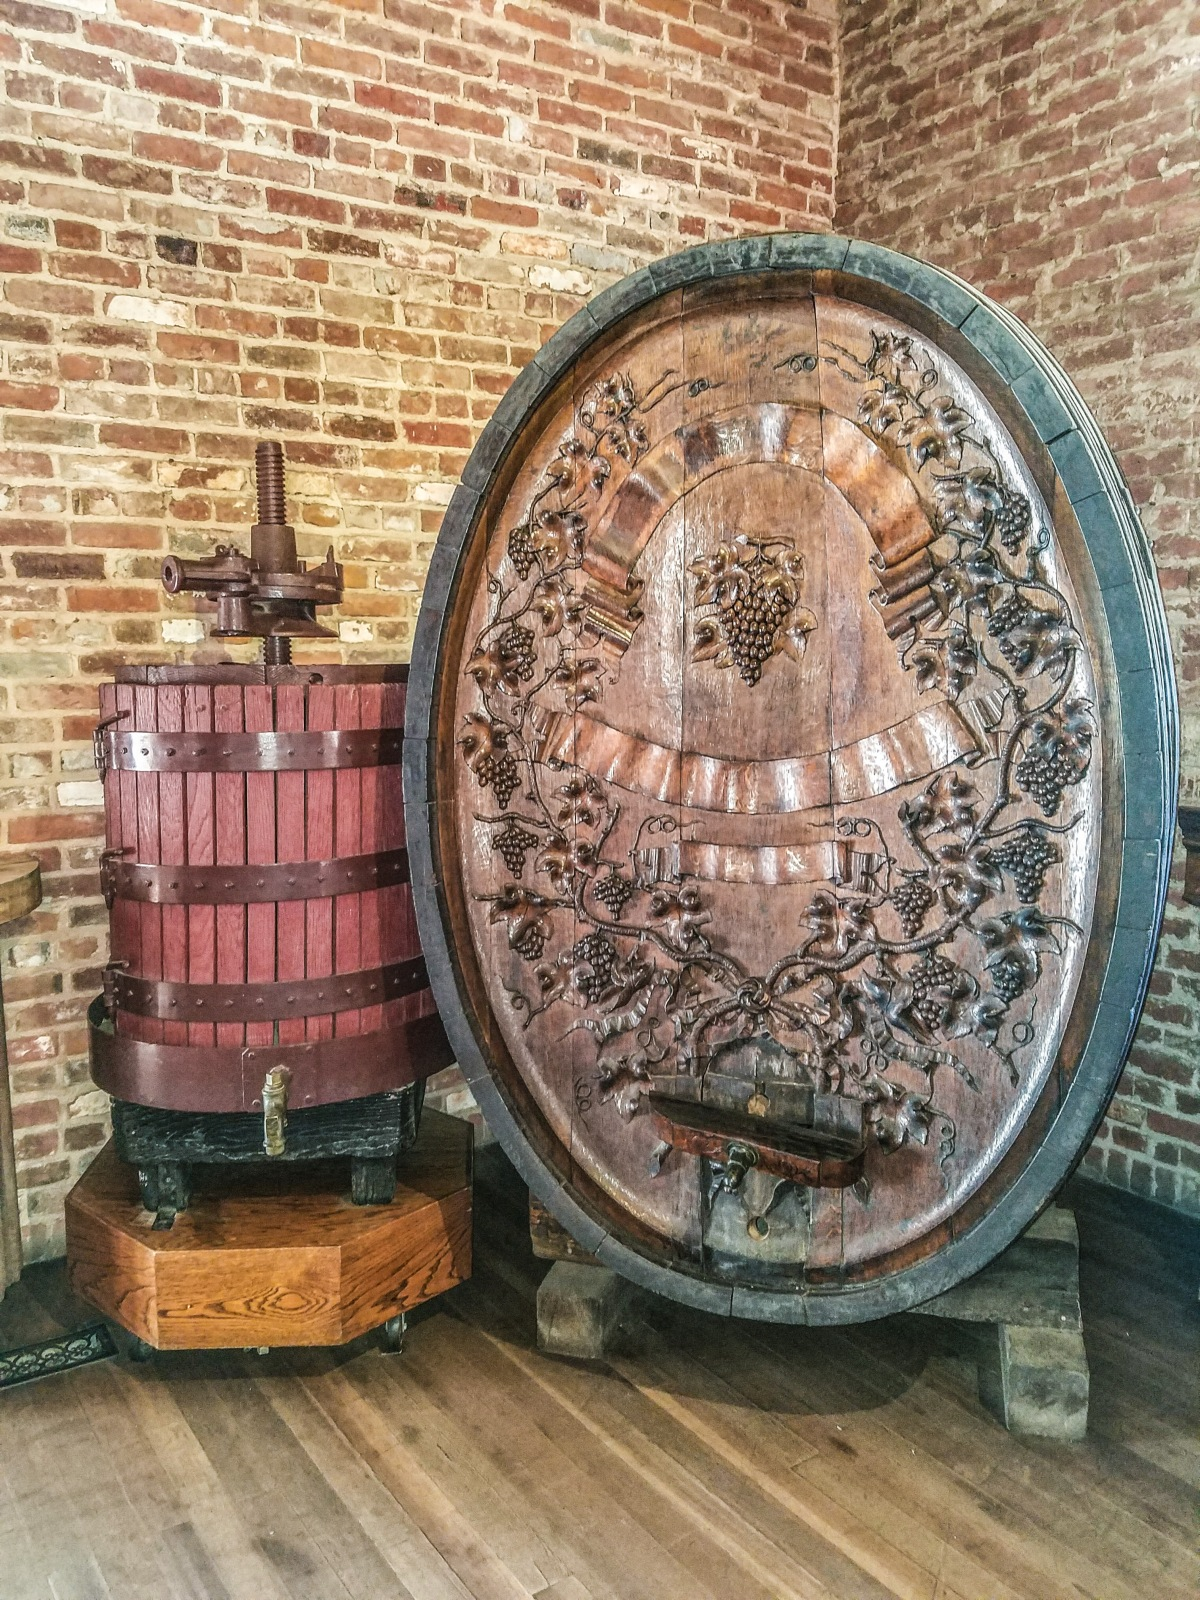 Inside the tasting room